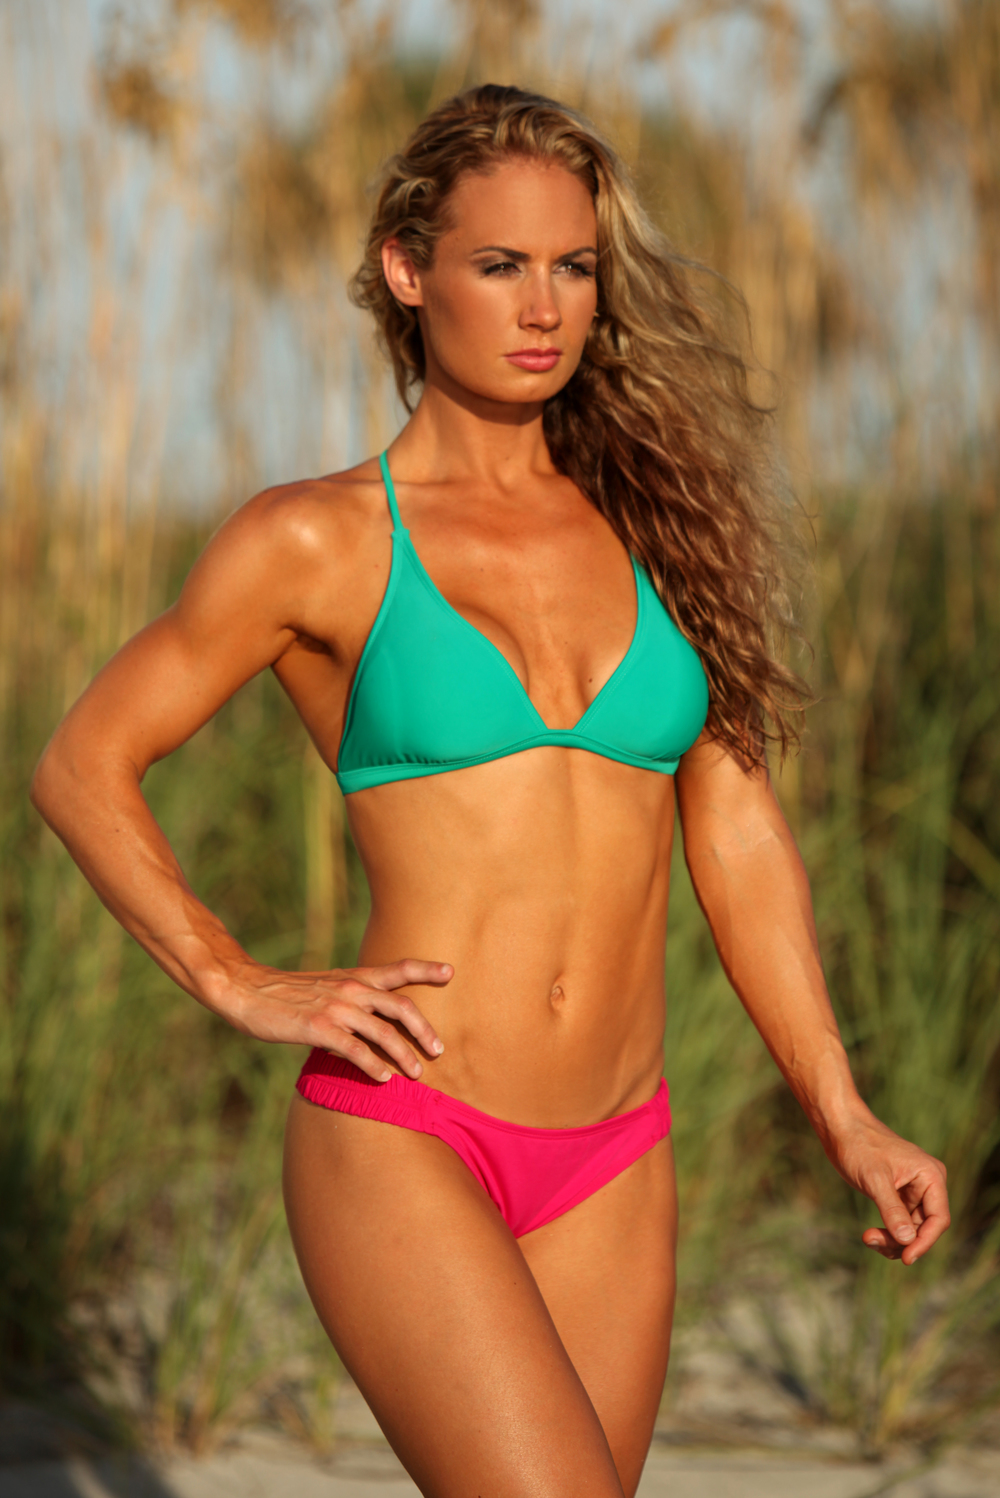 liz-team-fit-womens-fitness-health-wellness